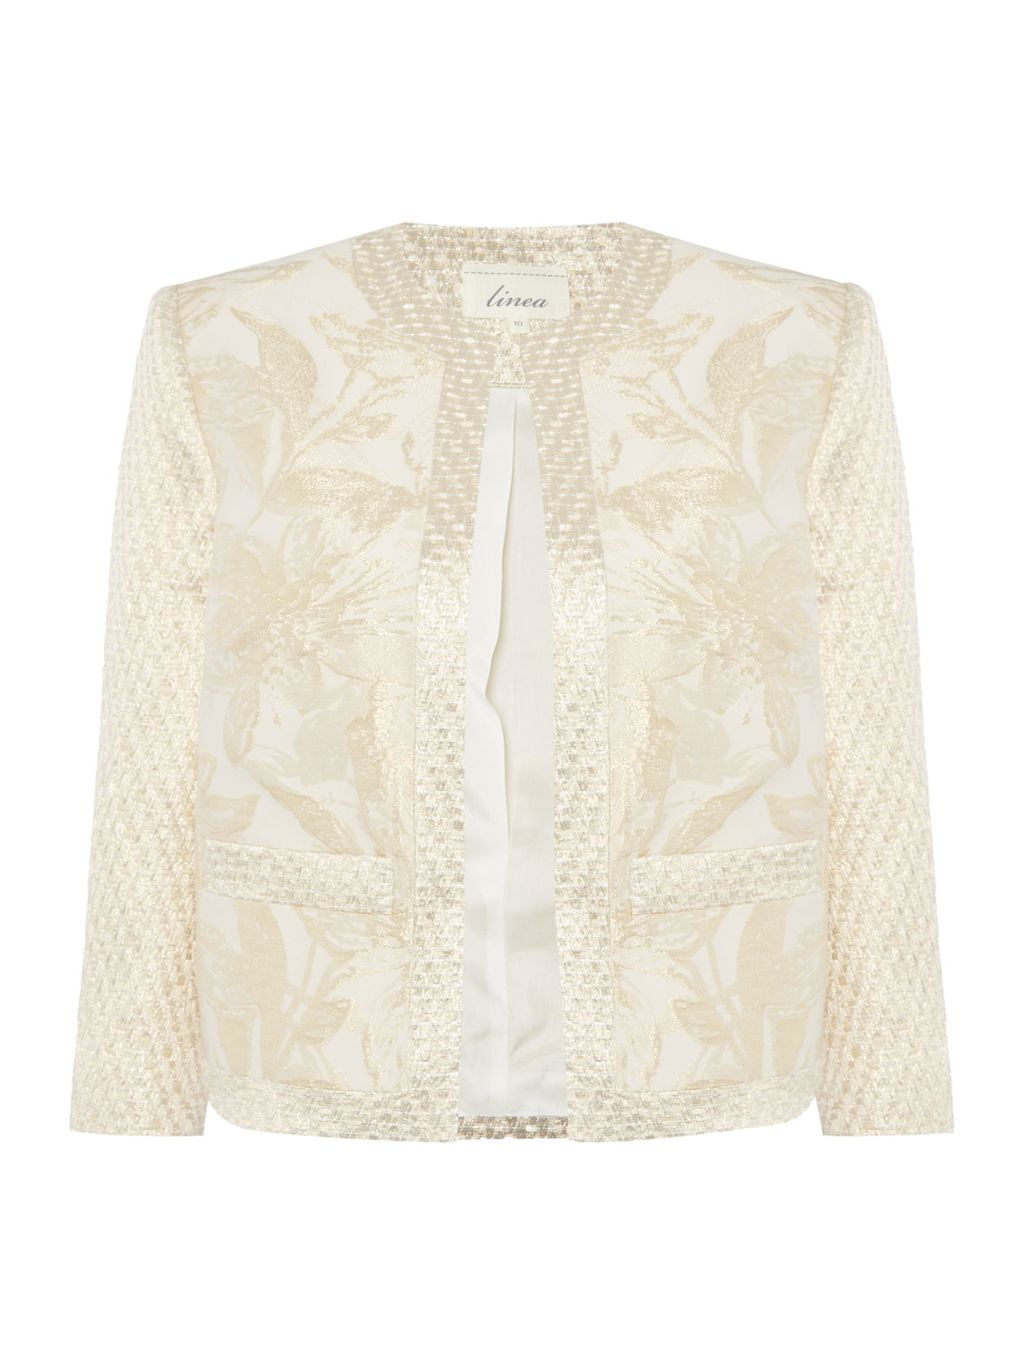 Made In Britain Gold Jacquard Floral Jacket., Gold - collar: round collar/collarless; style: boxy; predominant colour: ivory/cream; occasions: evening; length: standard; fit: straight cut (boxy); fibres: polyester/polyamide - mix; sleeve length: 3/4 length; sleeve style: standard; collar break: low/open; pattern type: fabric; pattern size: standard; pattern: florals; texture group: brocade/jacquard; season: s/s 2016